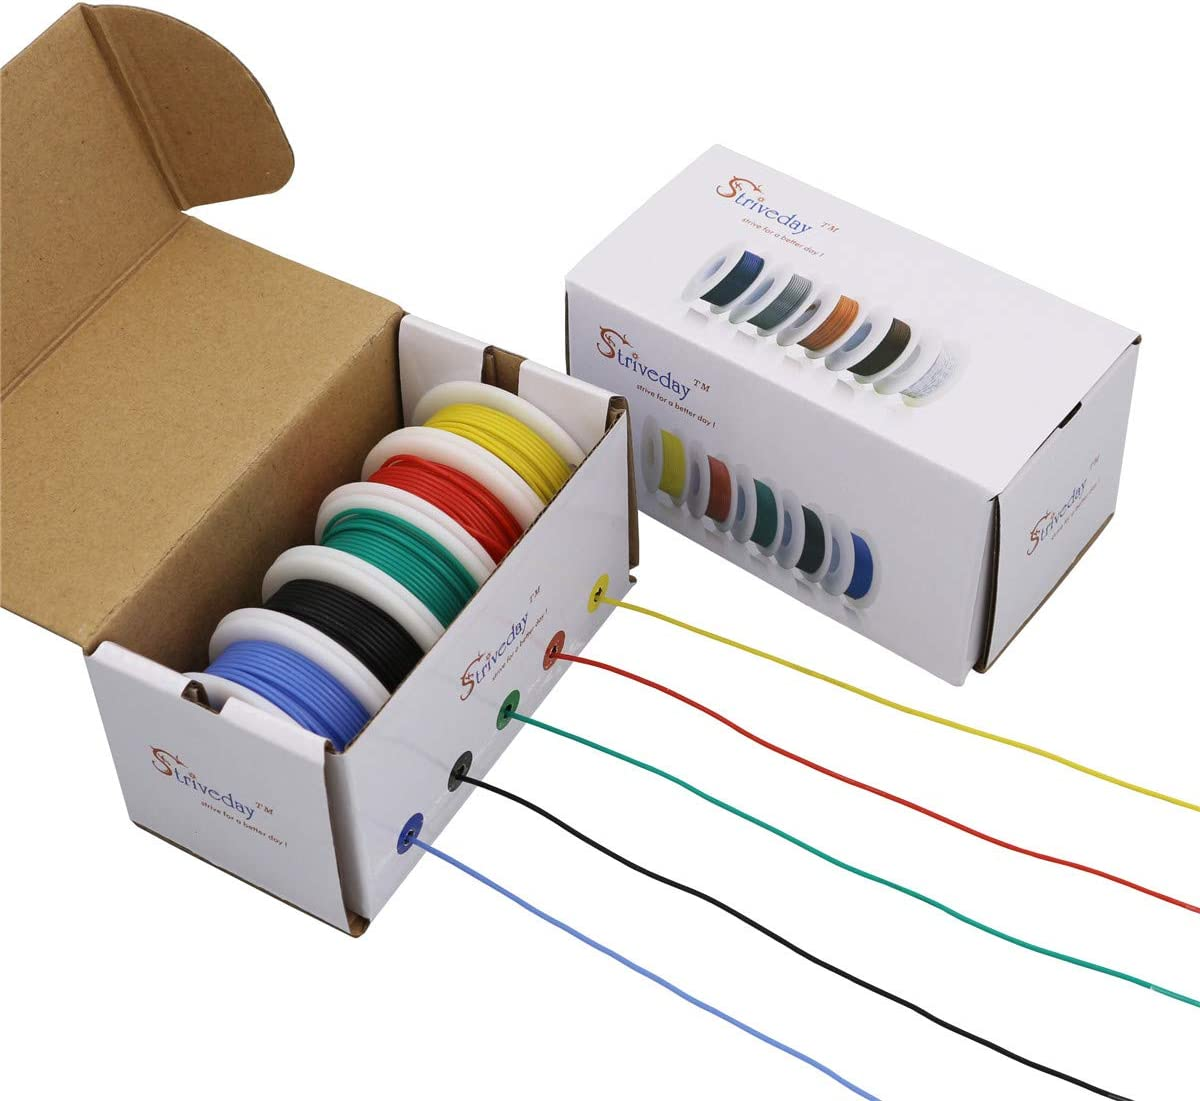 Striveday™Flexible Silicone Wire 18awg Electric wire 18 gauge Coper Hook Up Wire 300V Cables electronic stranded wire cable electrics DIY BOX-1